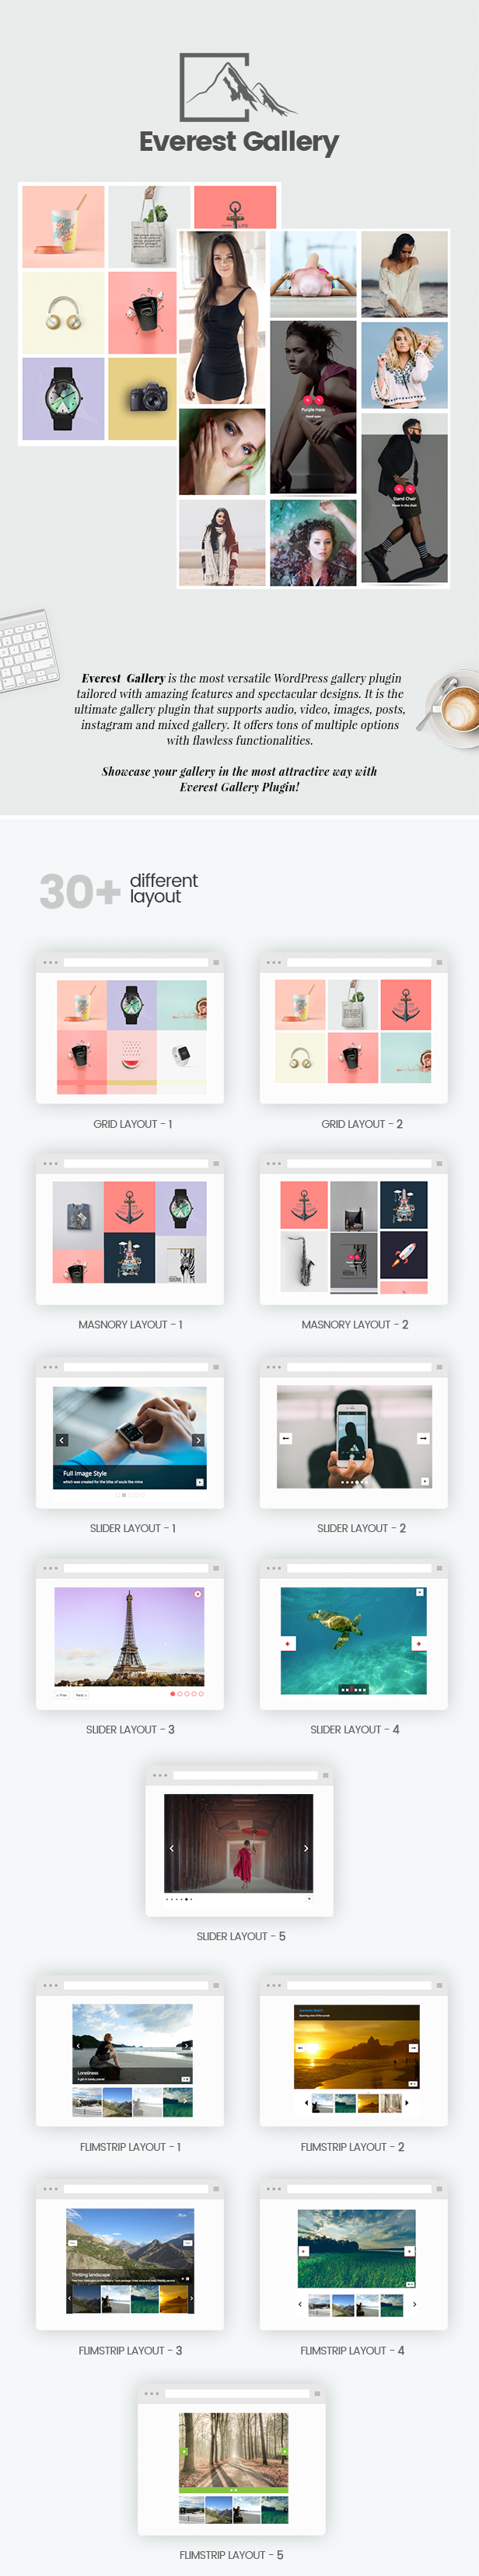 Everest Gallery - Responsive WordPress Gallery Plugin - 1